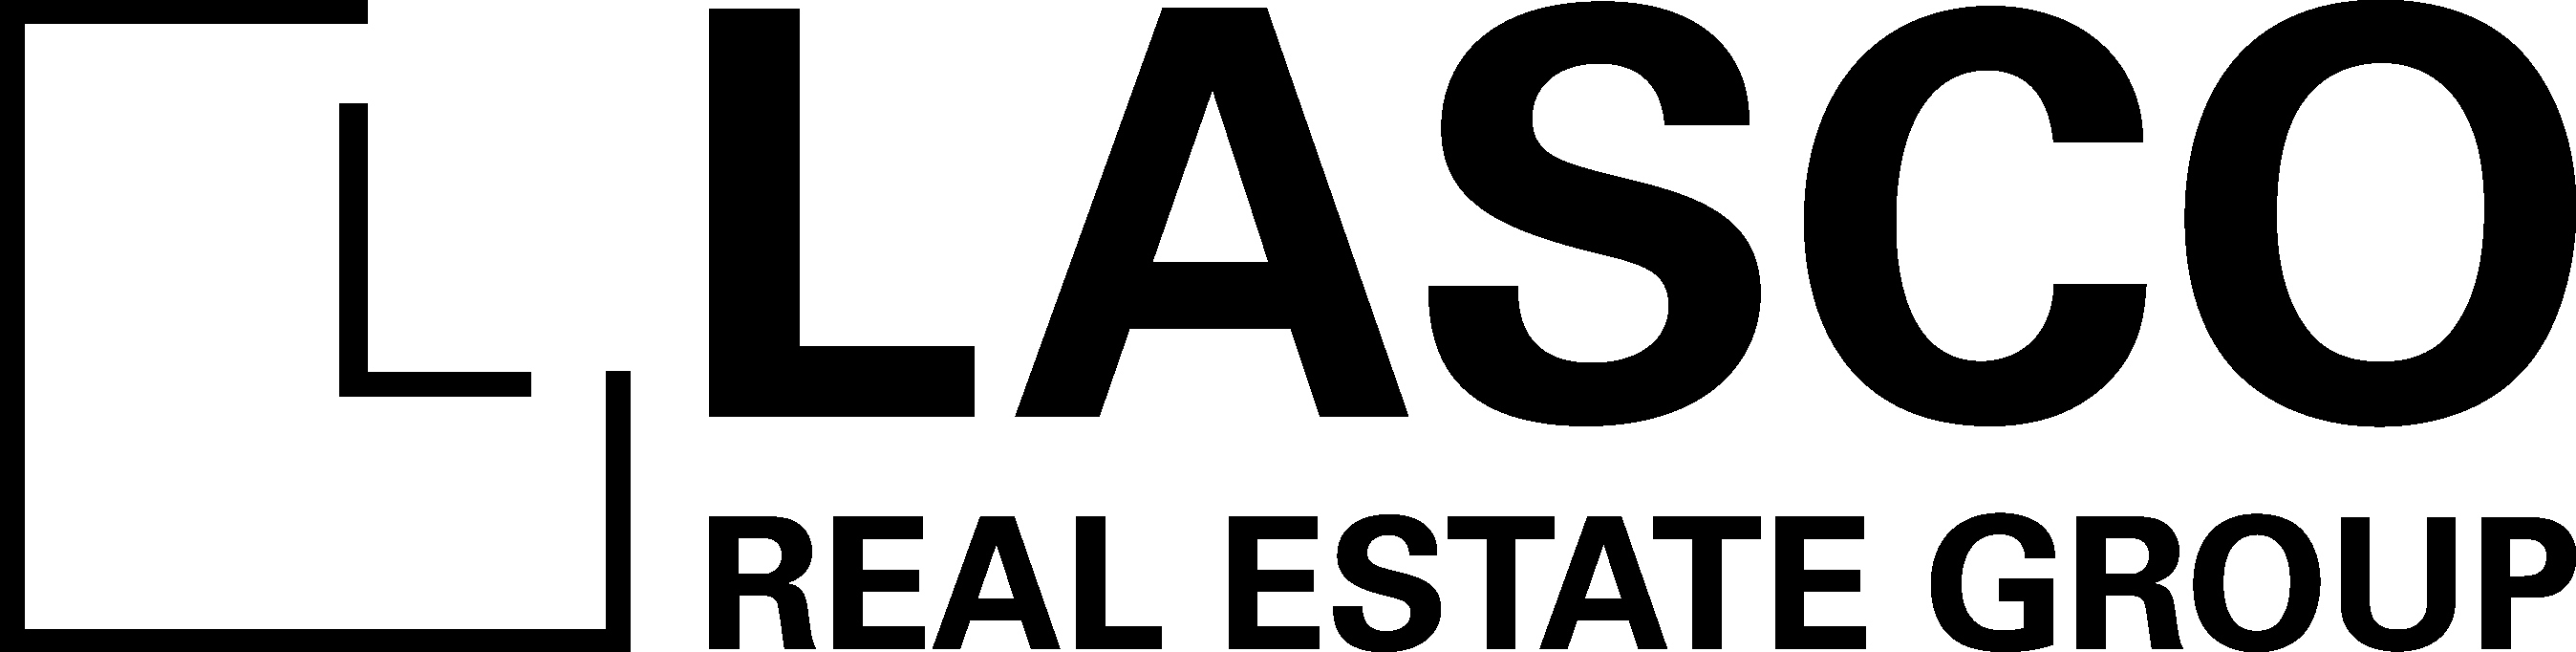 Lasco Real Estate Group Fenton Michigan